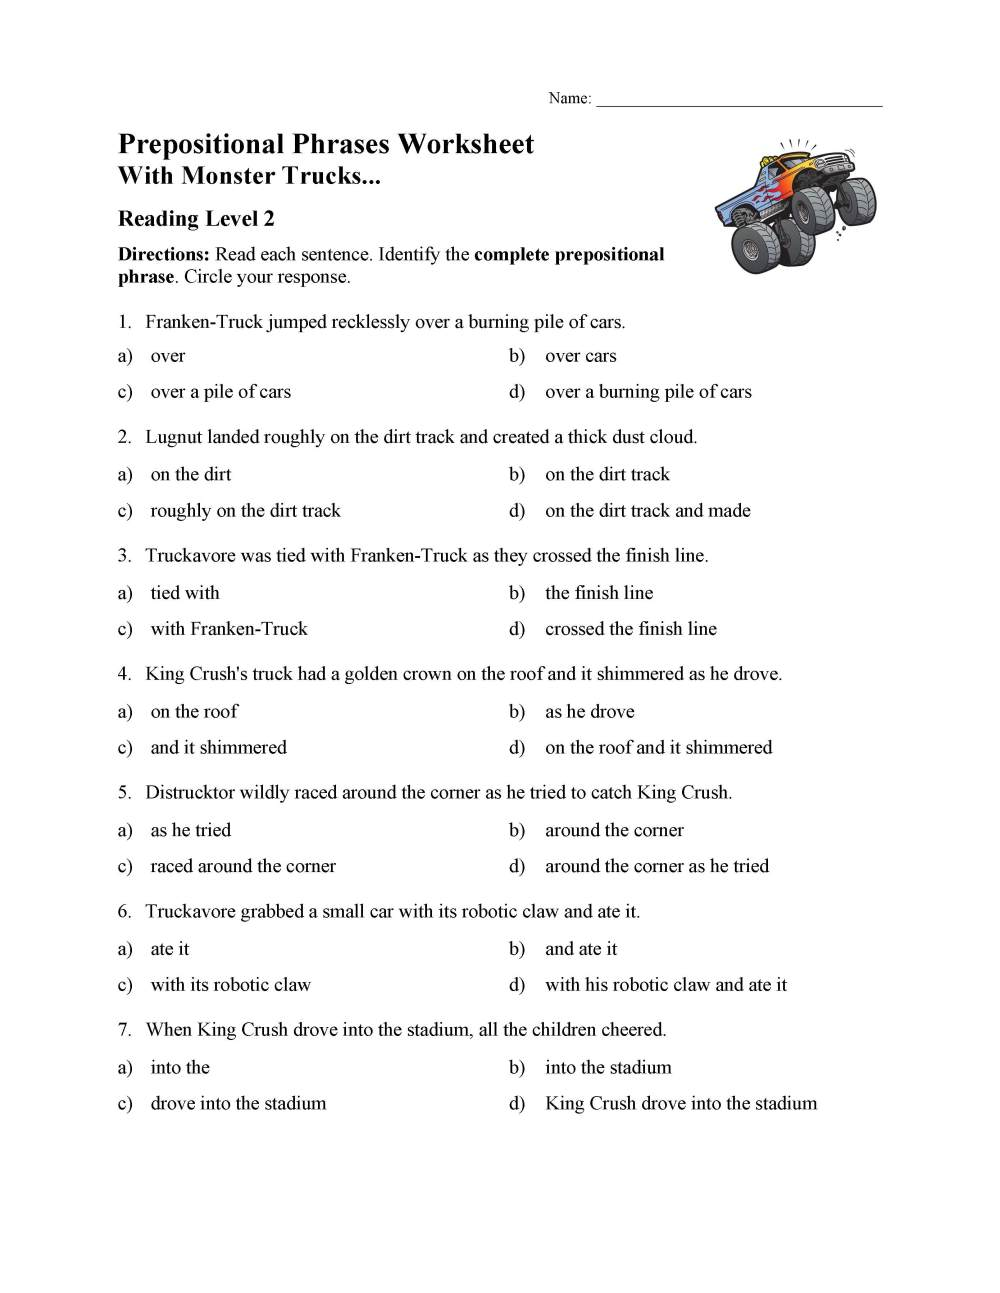 medium resolution of Prepositional Phrases Worksheet 1 - Reading Level 2   Preview